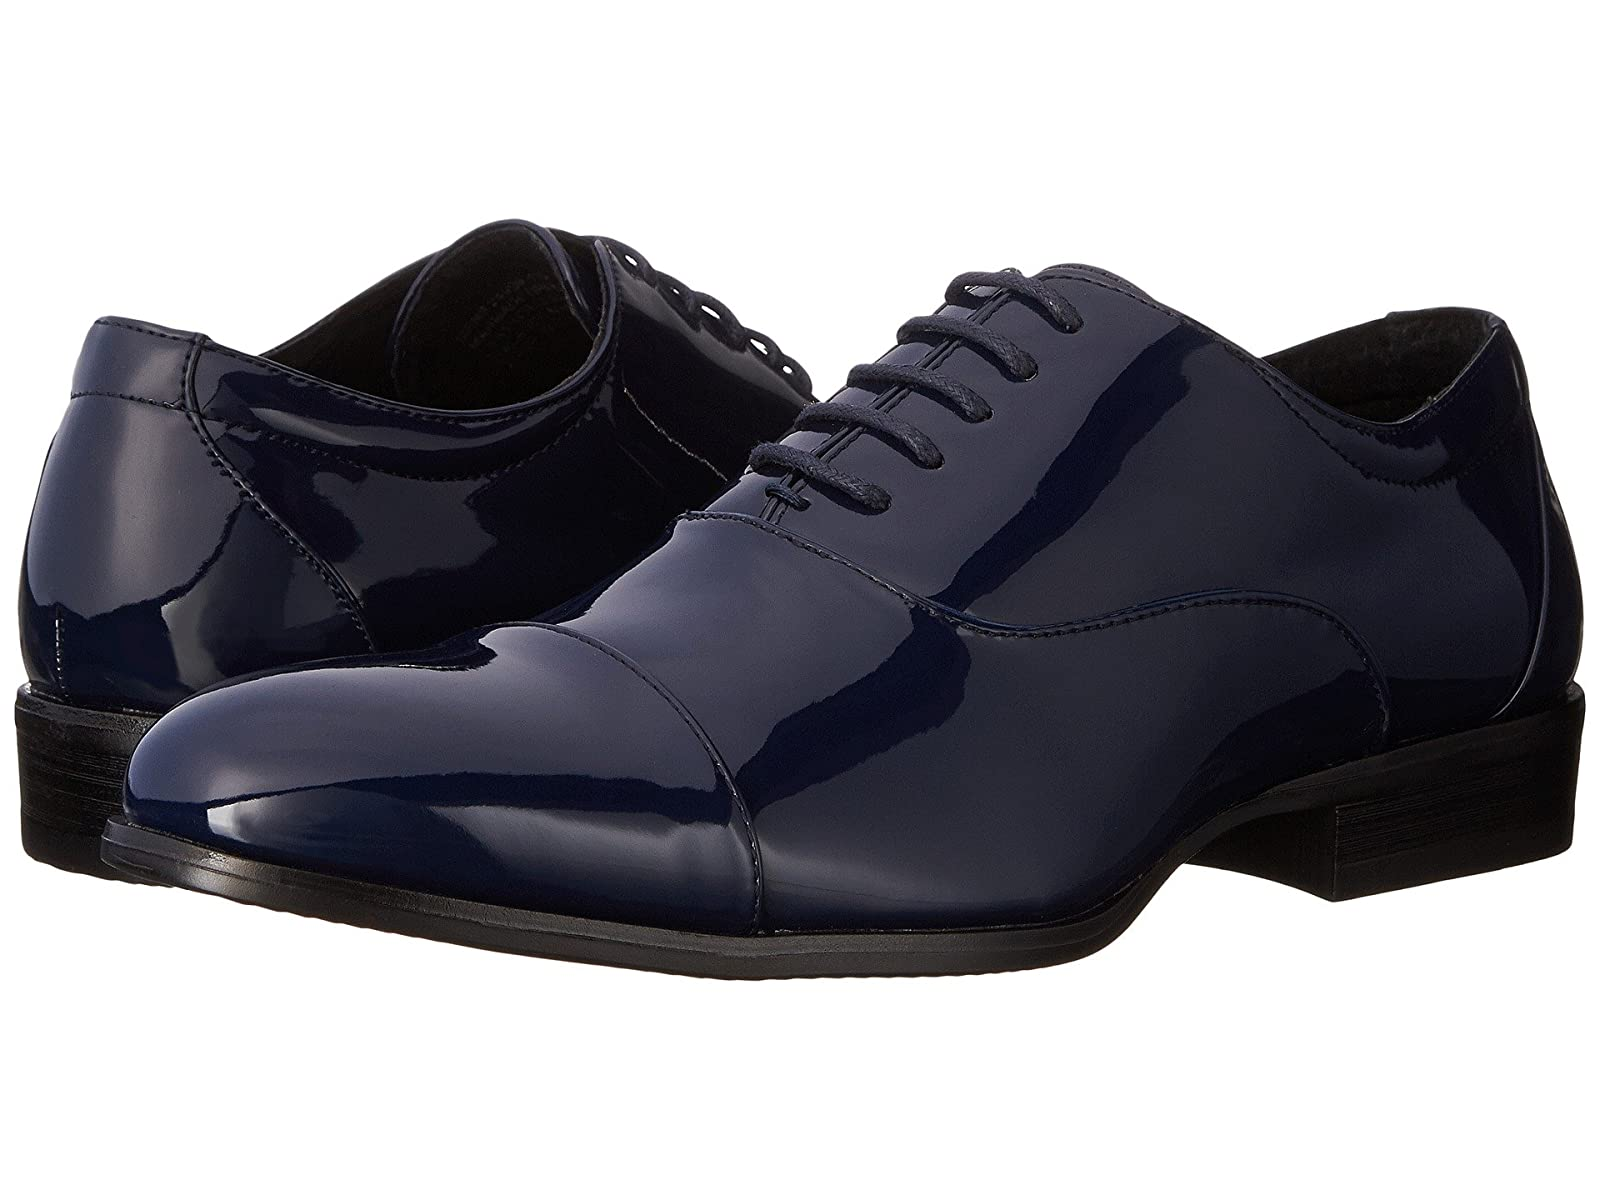 Stacy Adams GalaAtmospheric grades have affordable shoes